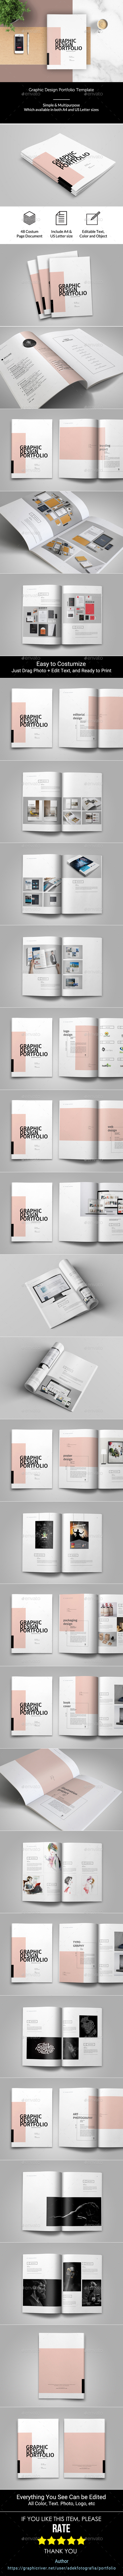 GraphicRiver Graphic Design Portfolio Template 21134652